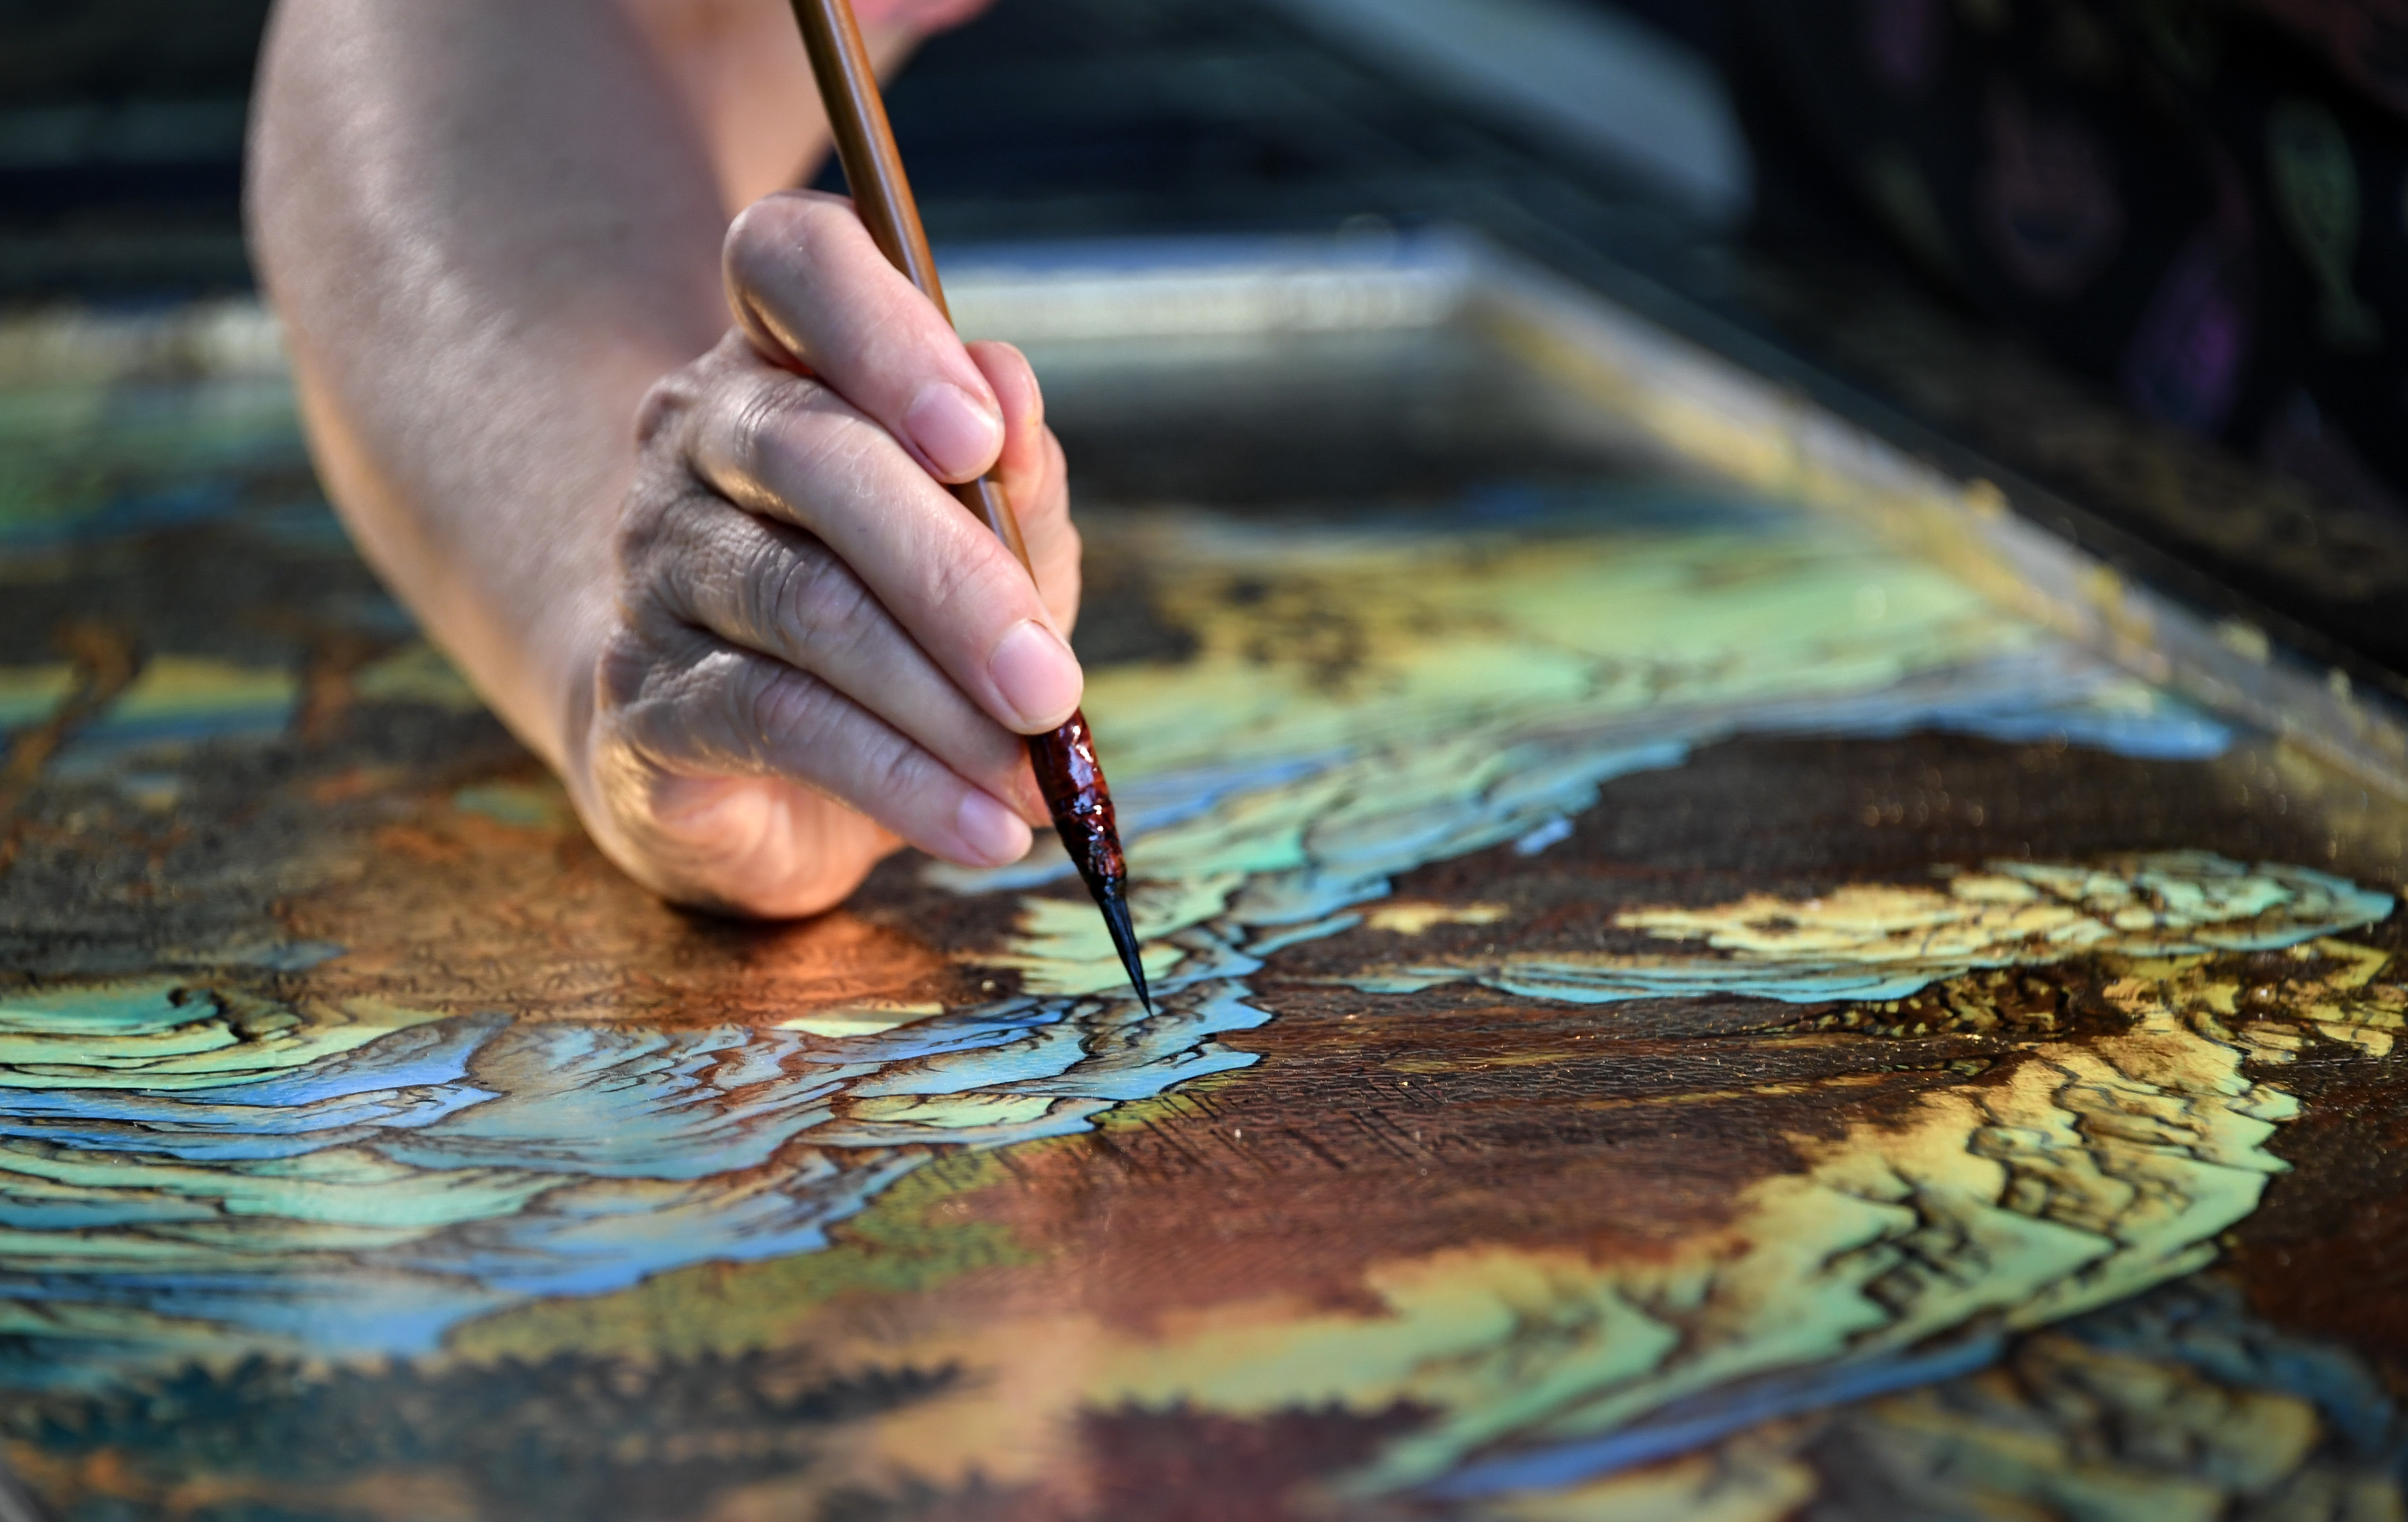 Gold inlaid lacquer: an art glittering in the river of time - Xinhua | English.news.cn